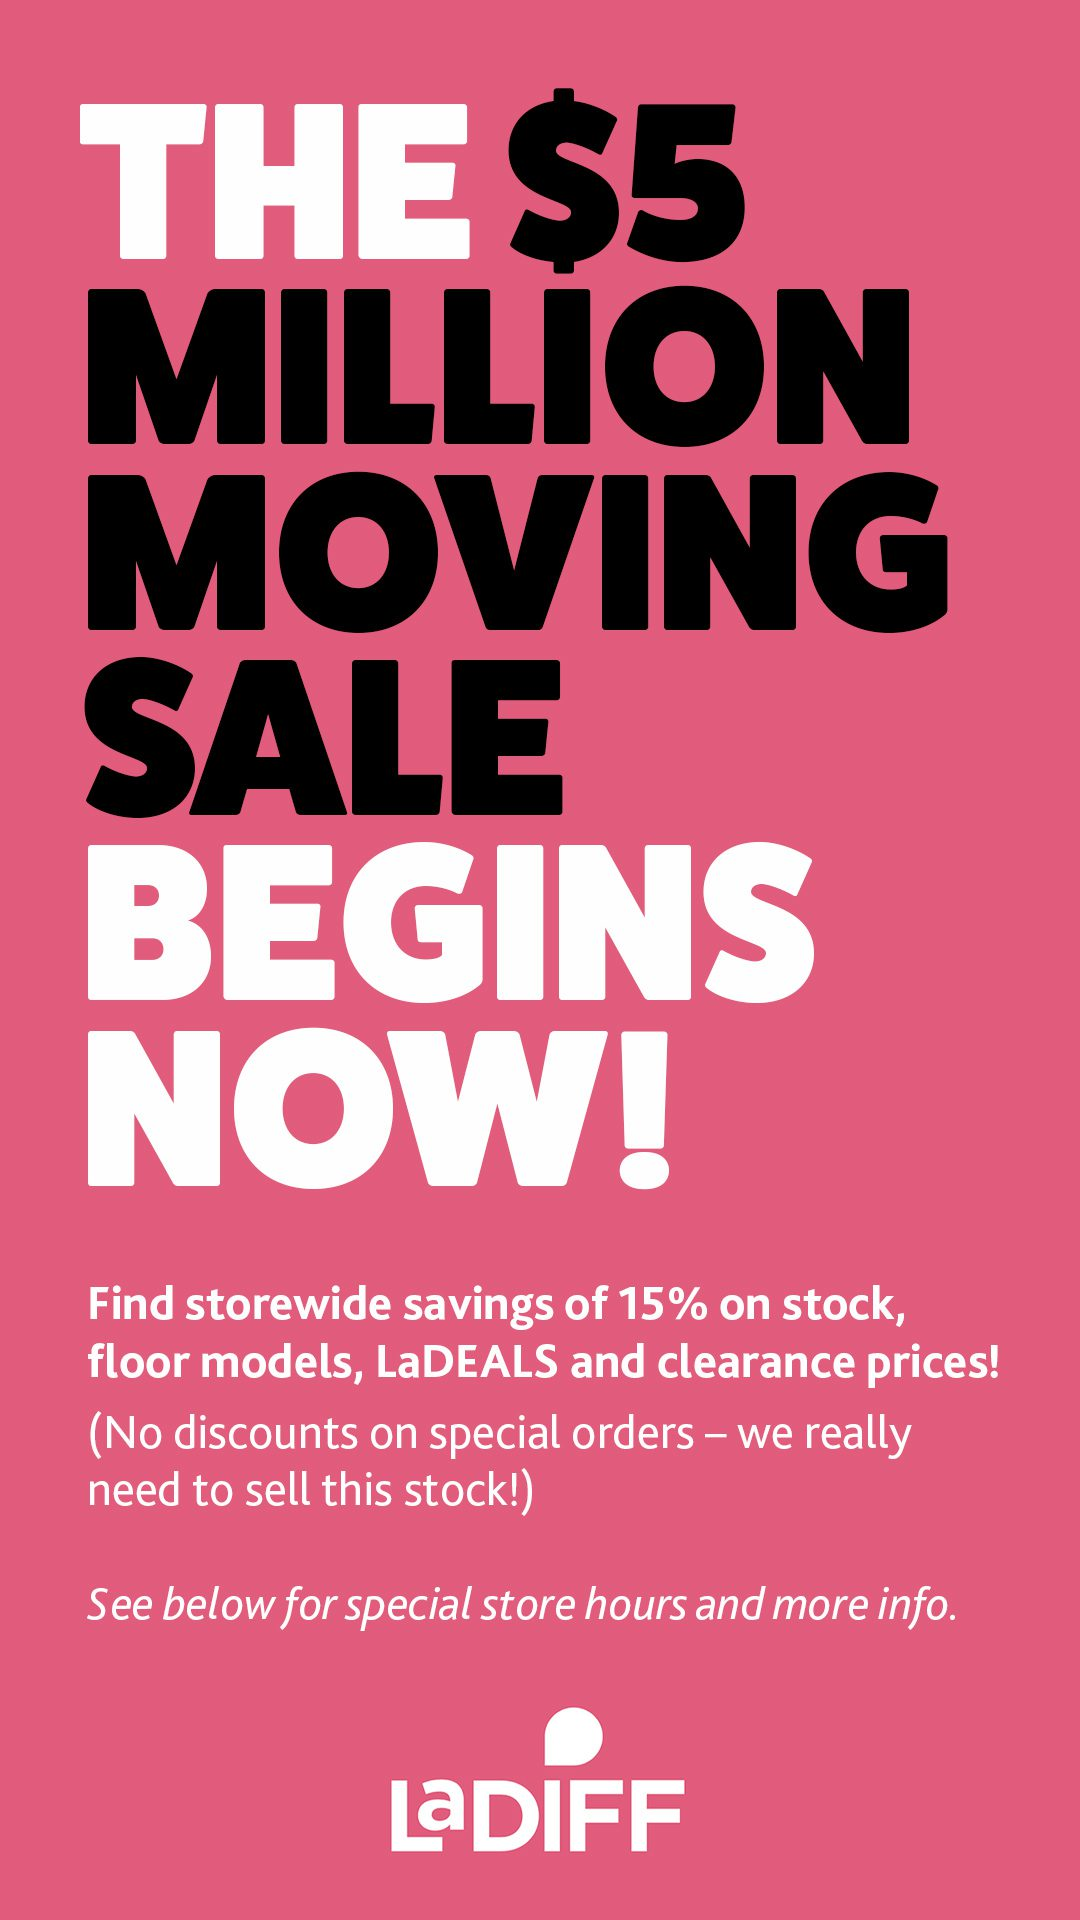 ladiff moving sale begins now